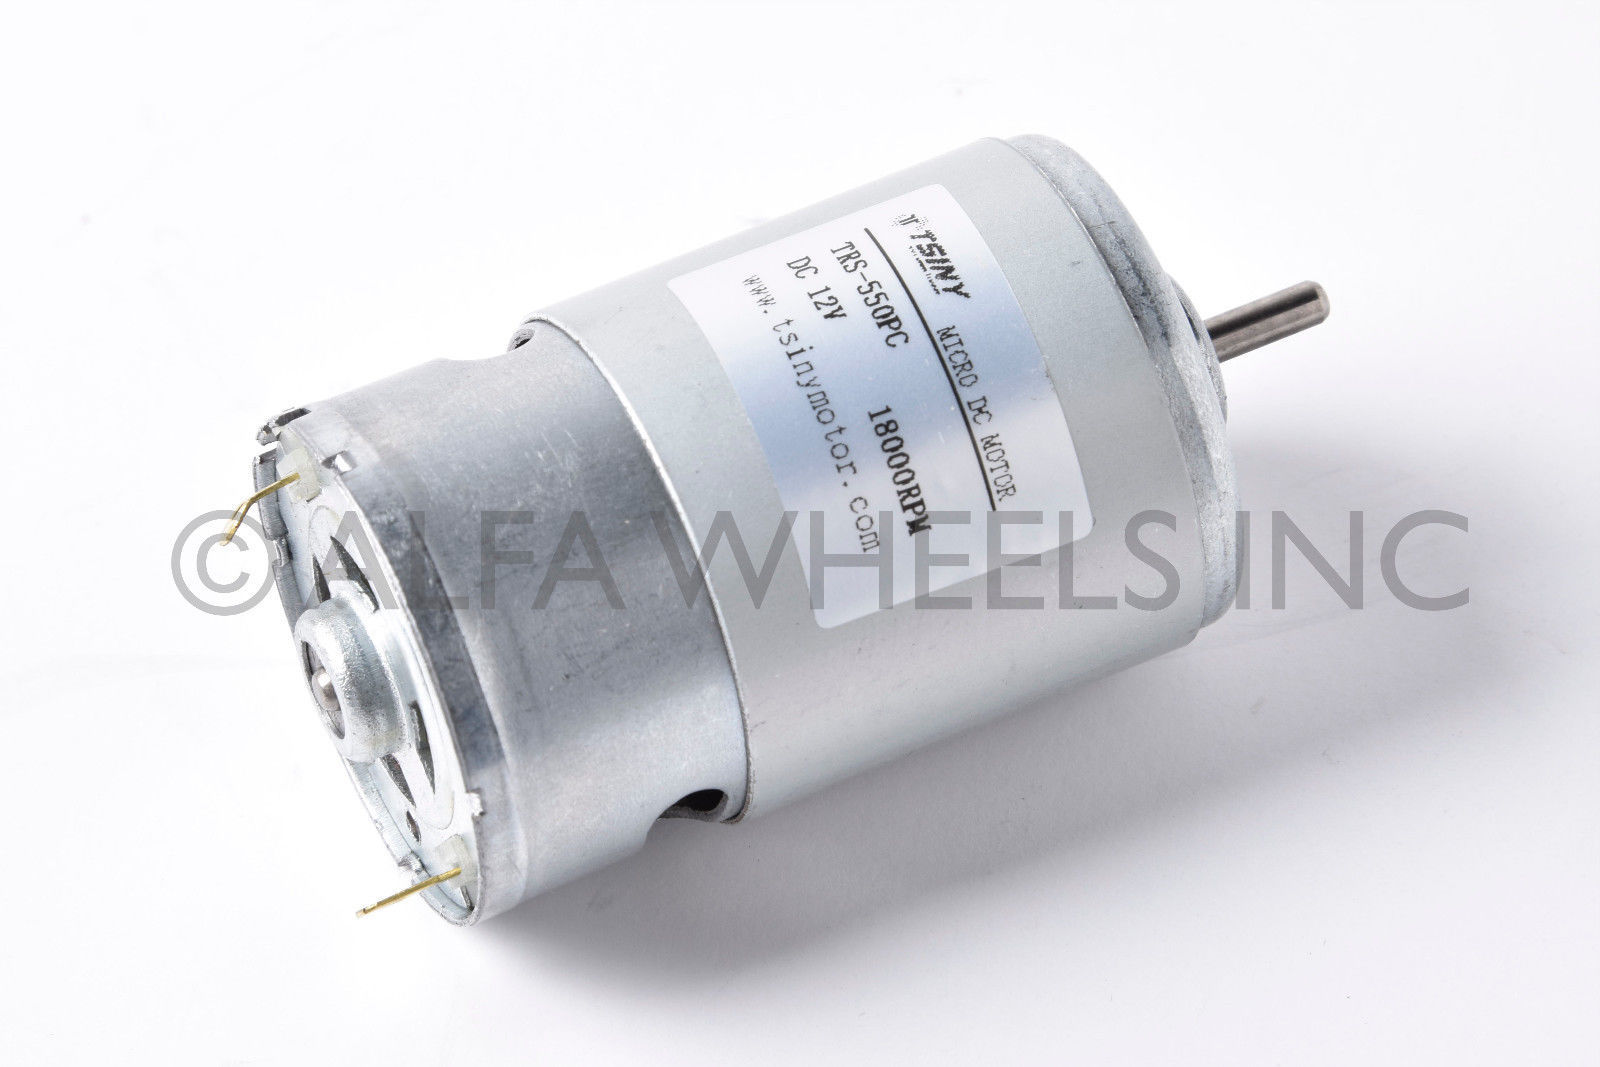 Electric pmdc 12 v dc 120 w motor 19000 rpm high speed for 120 rpm ac motor